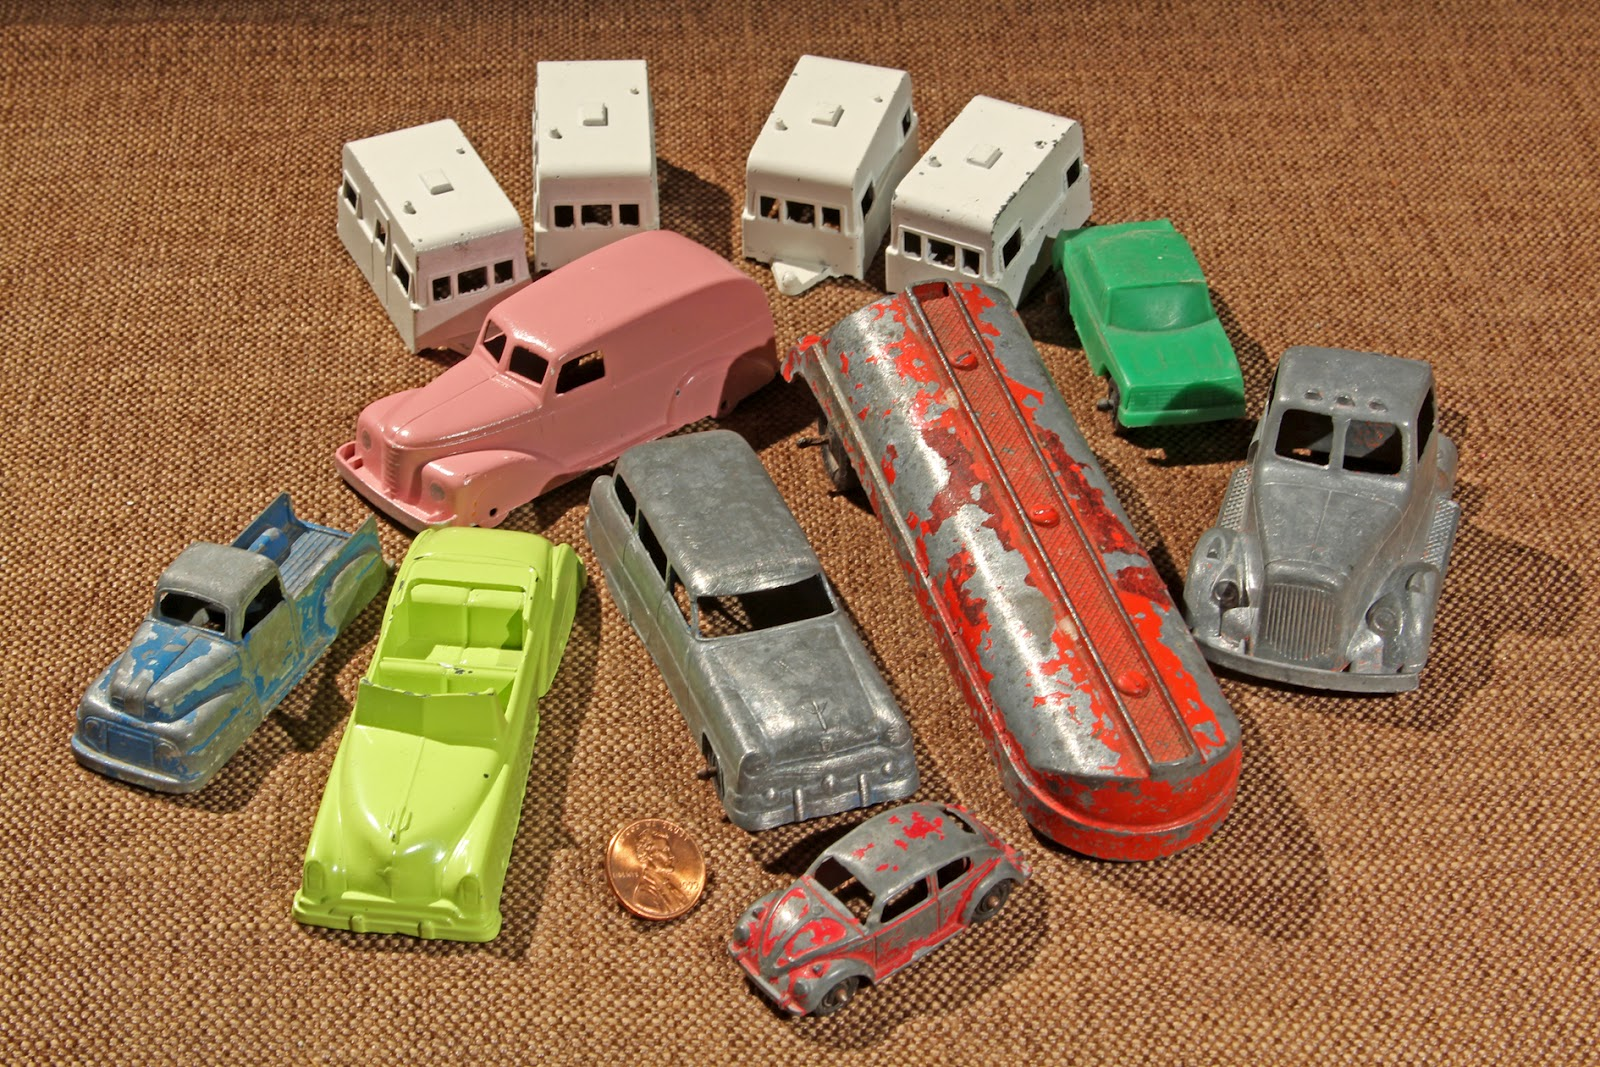 Toys 4 Trucks Green Bay : Old antique toys leftovers for e bay listings